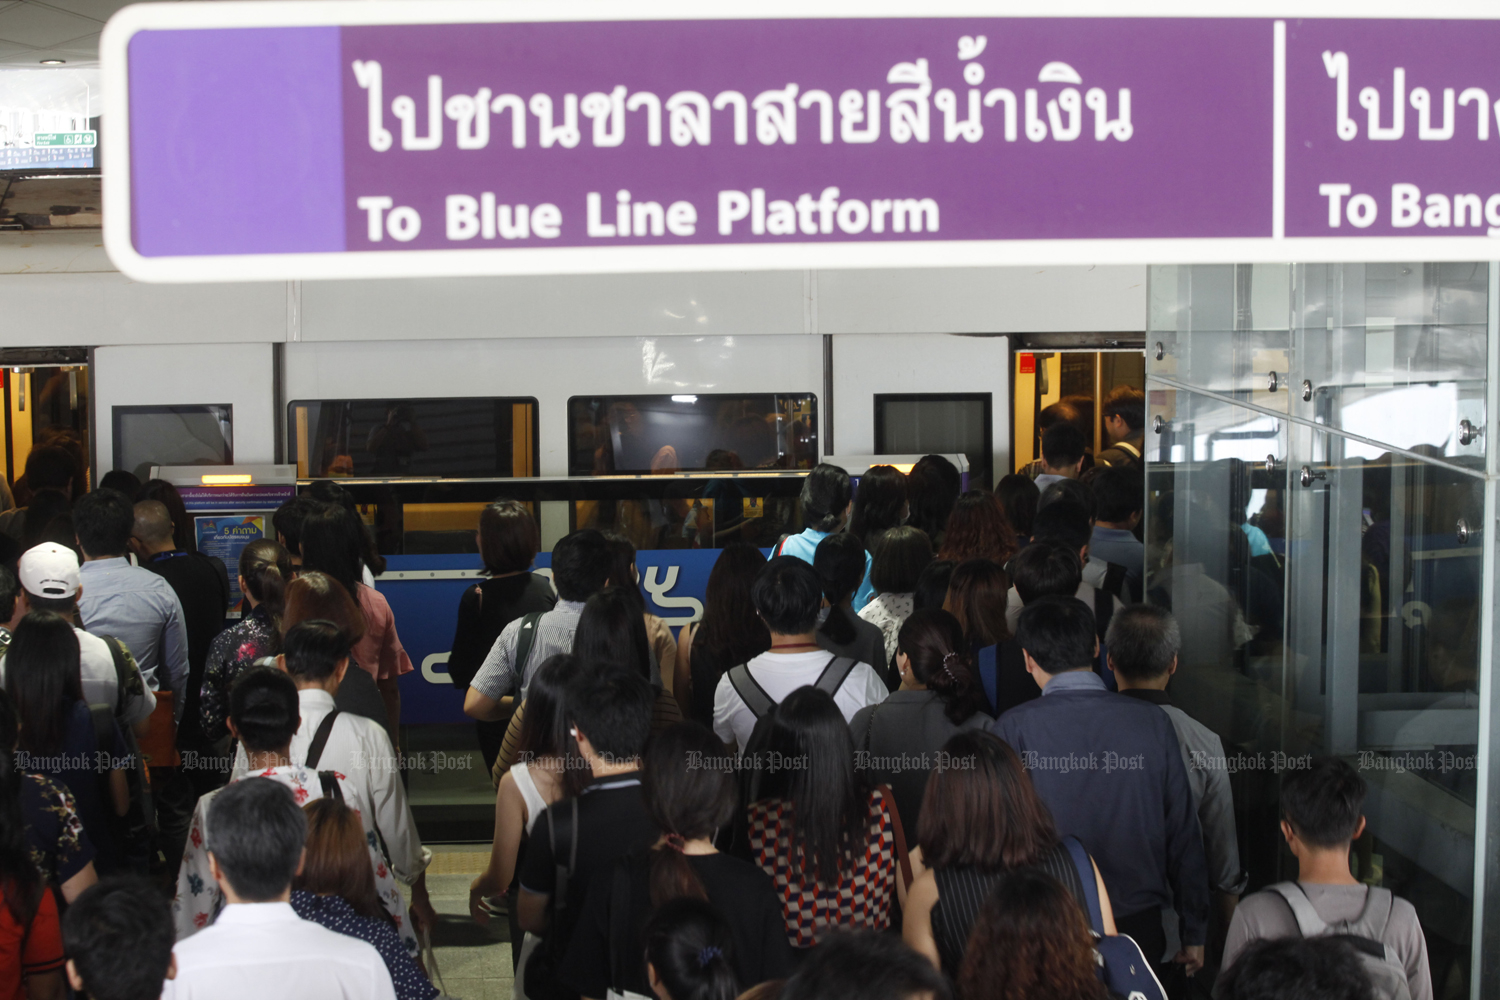 The Transport Ministry has asked Bangkok Expressway and Metro Plc to increase train frequency to cope with passenger numbers at Tao Poon station. (Photo by Pornprom Satrabhaya)